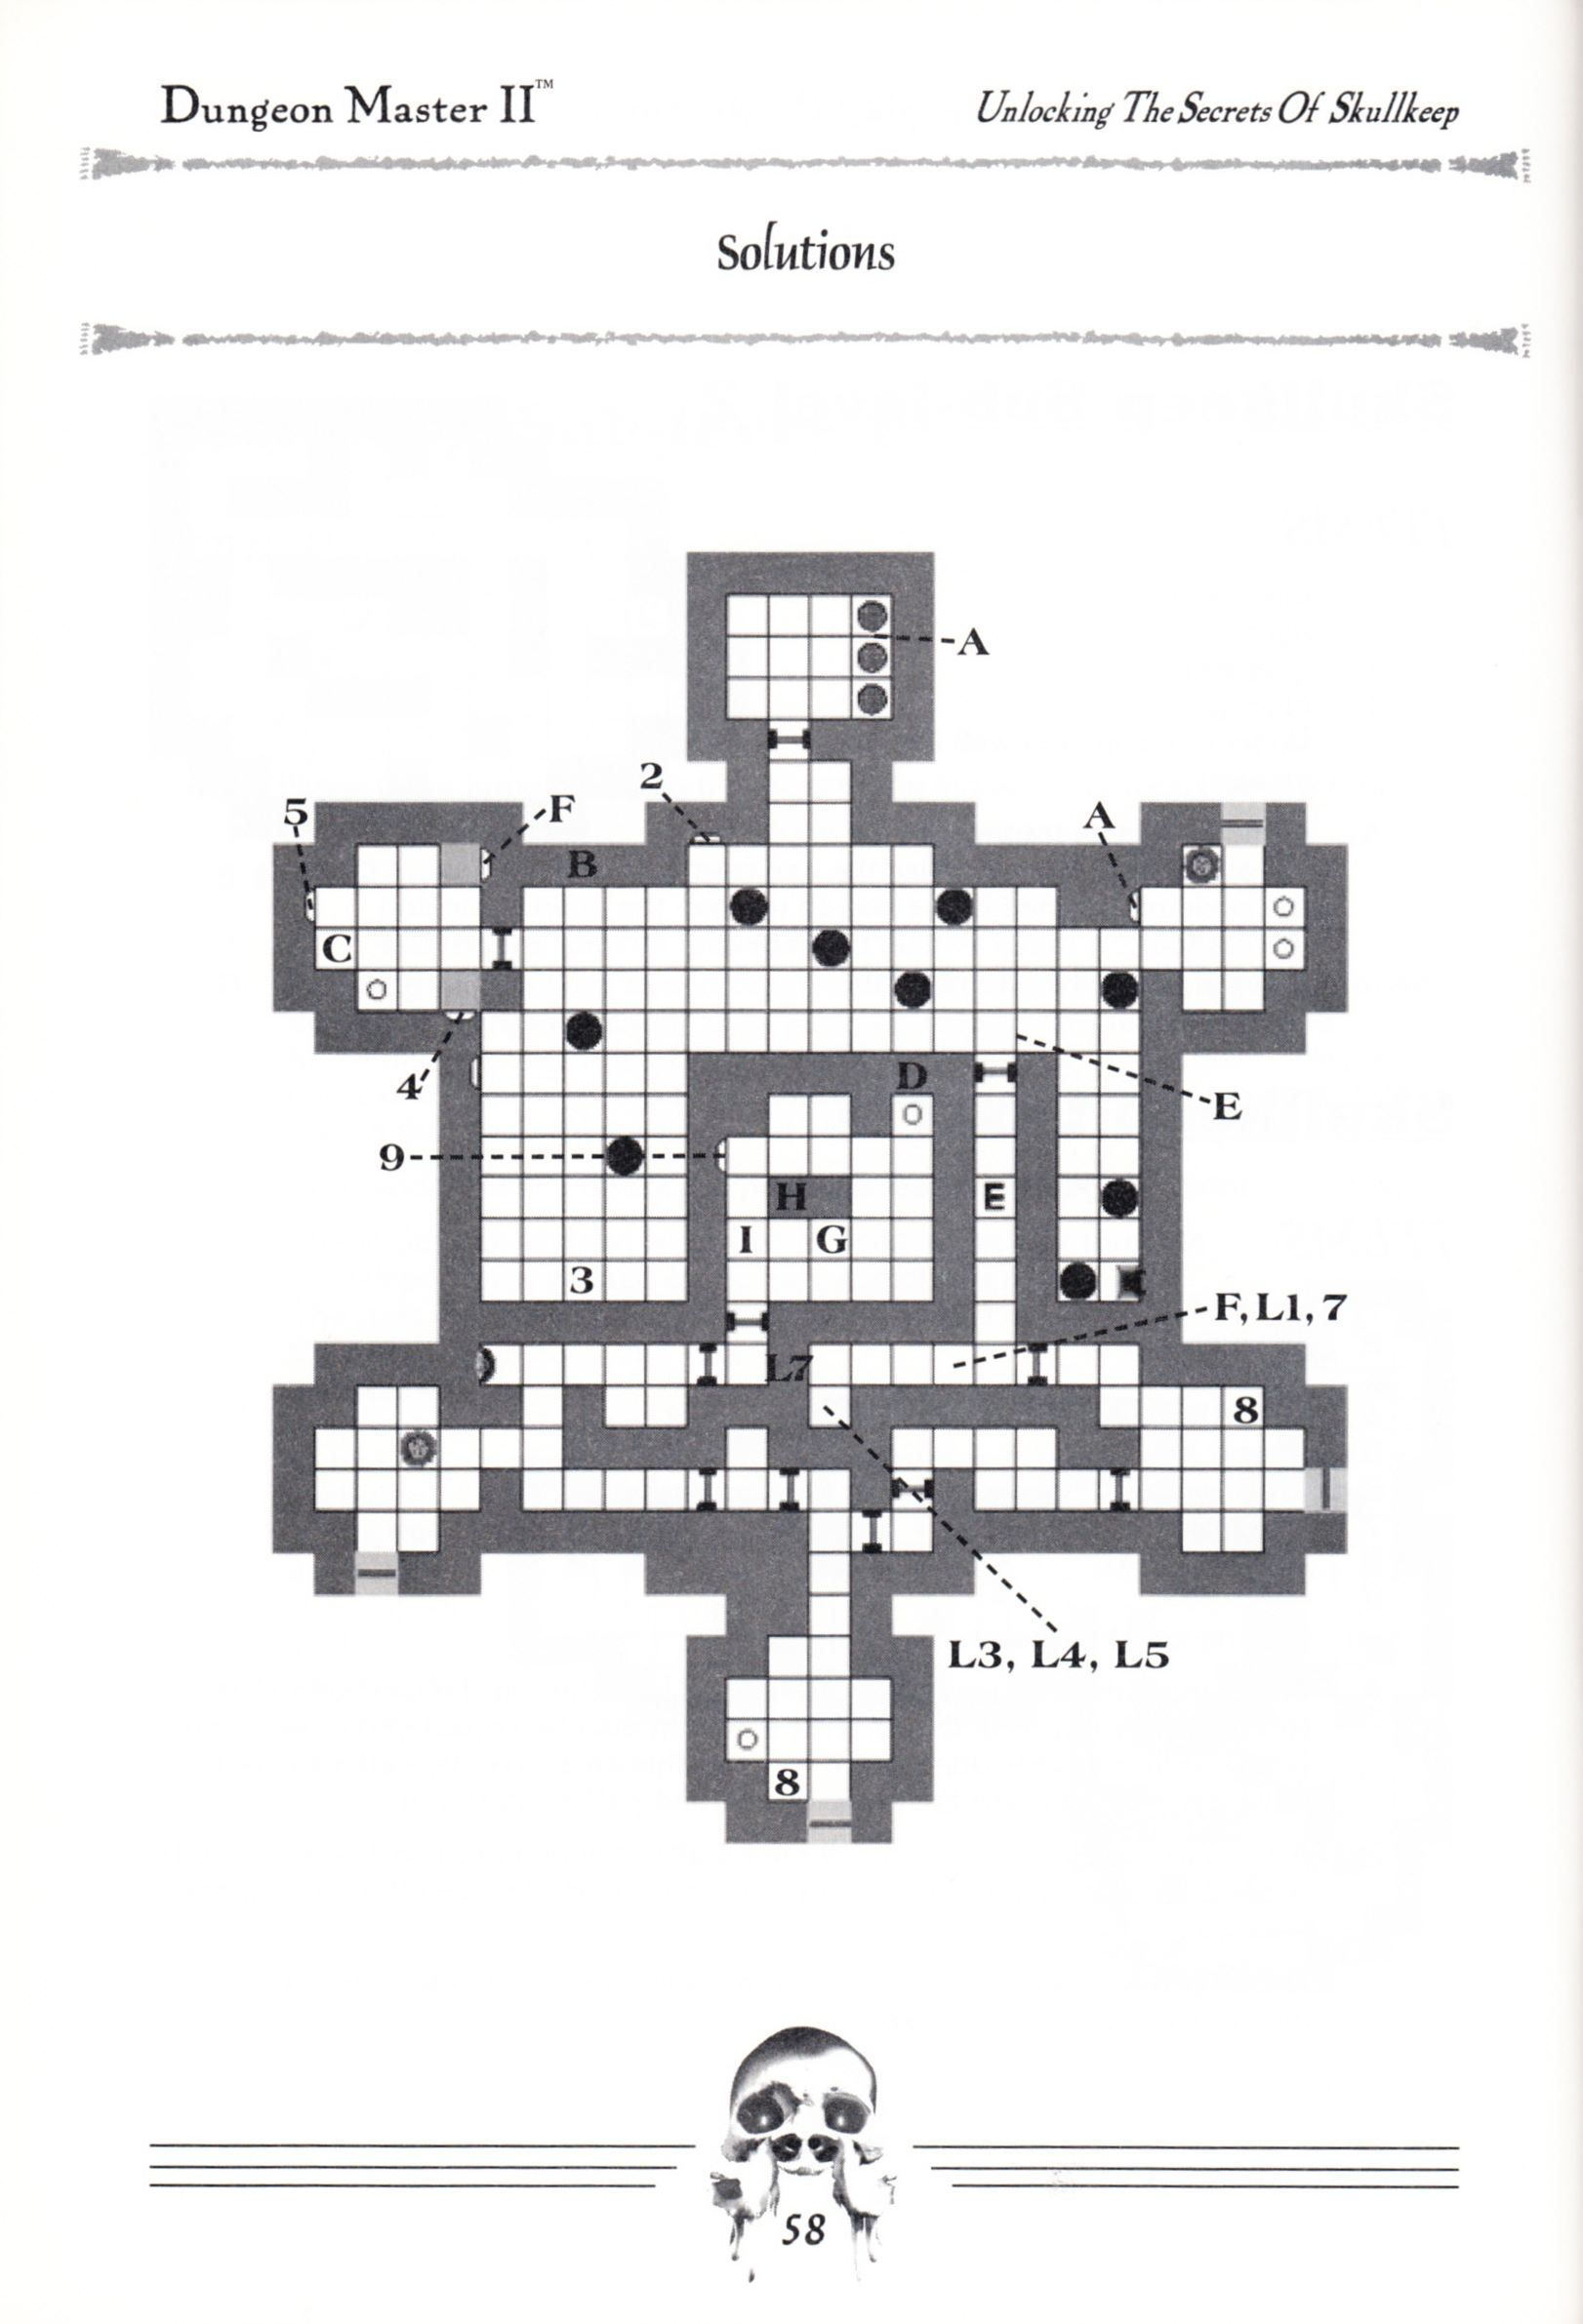 Hint Book - Dungeon Master II Clue Book - US - Page 060 - Scan